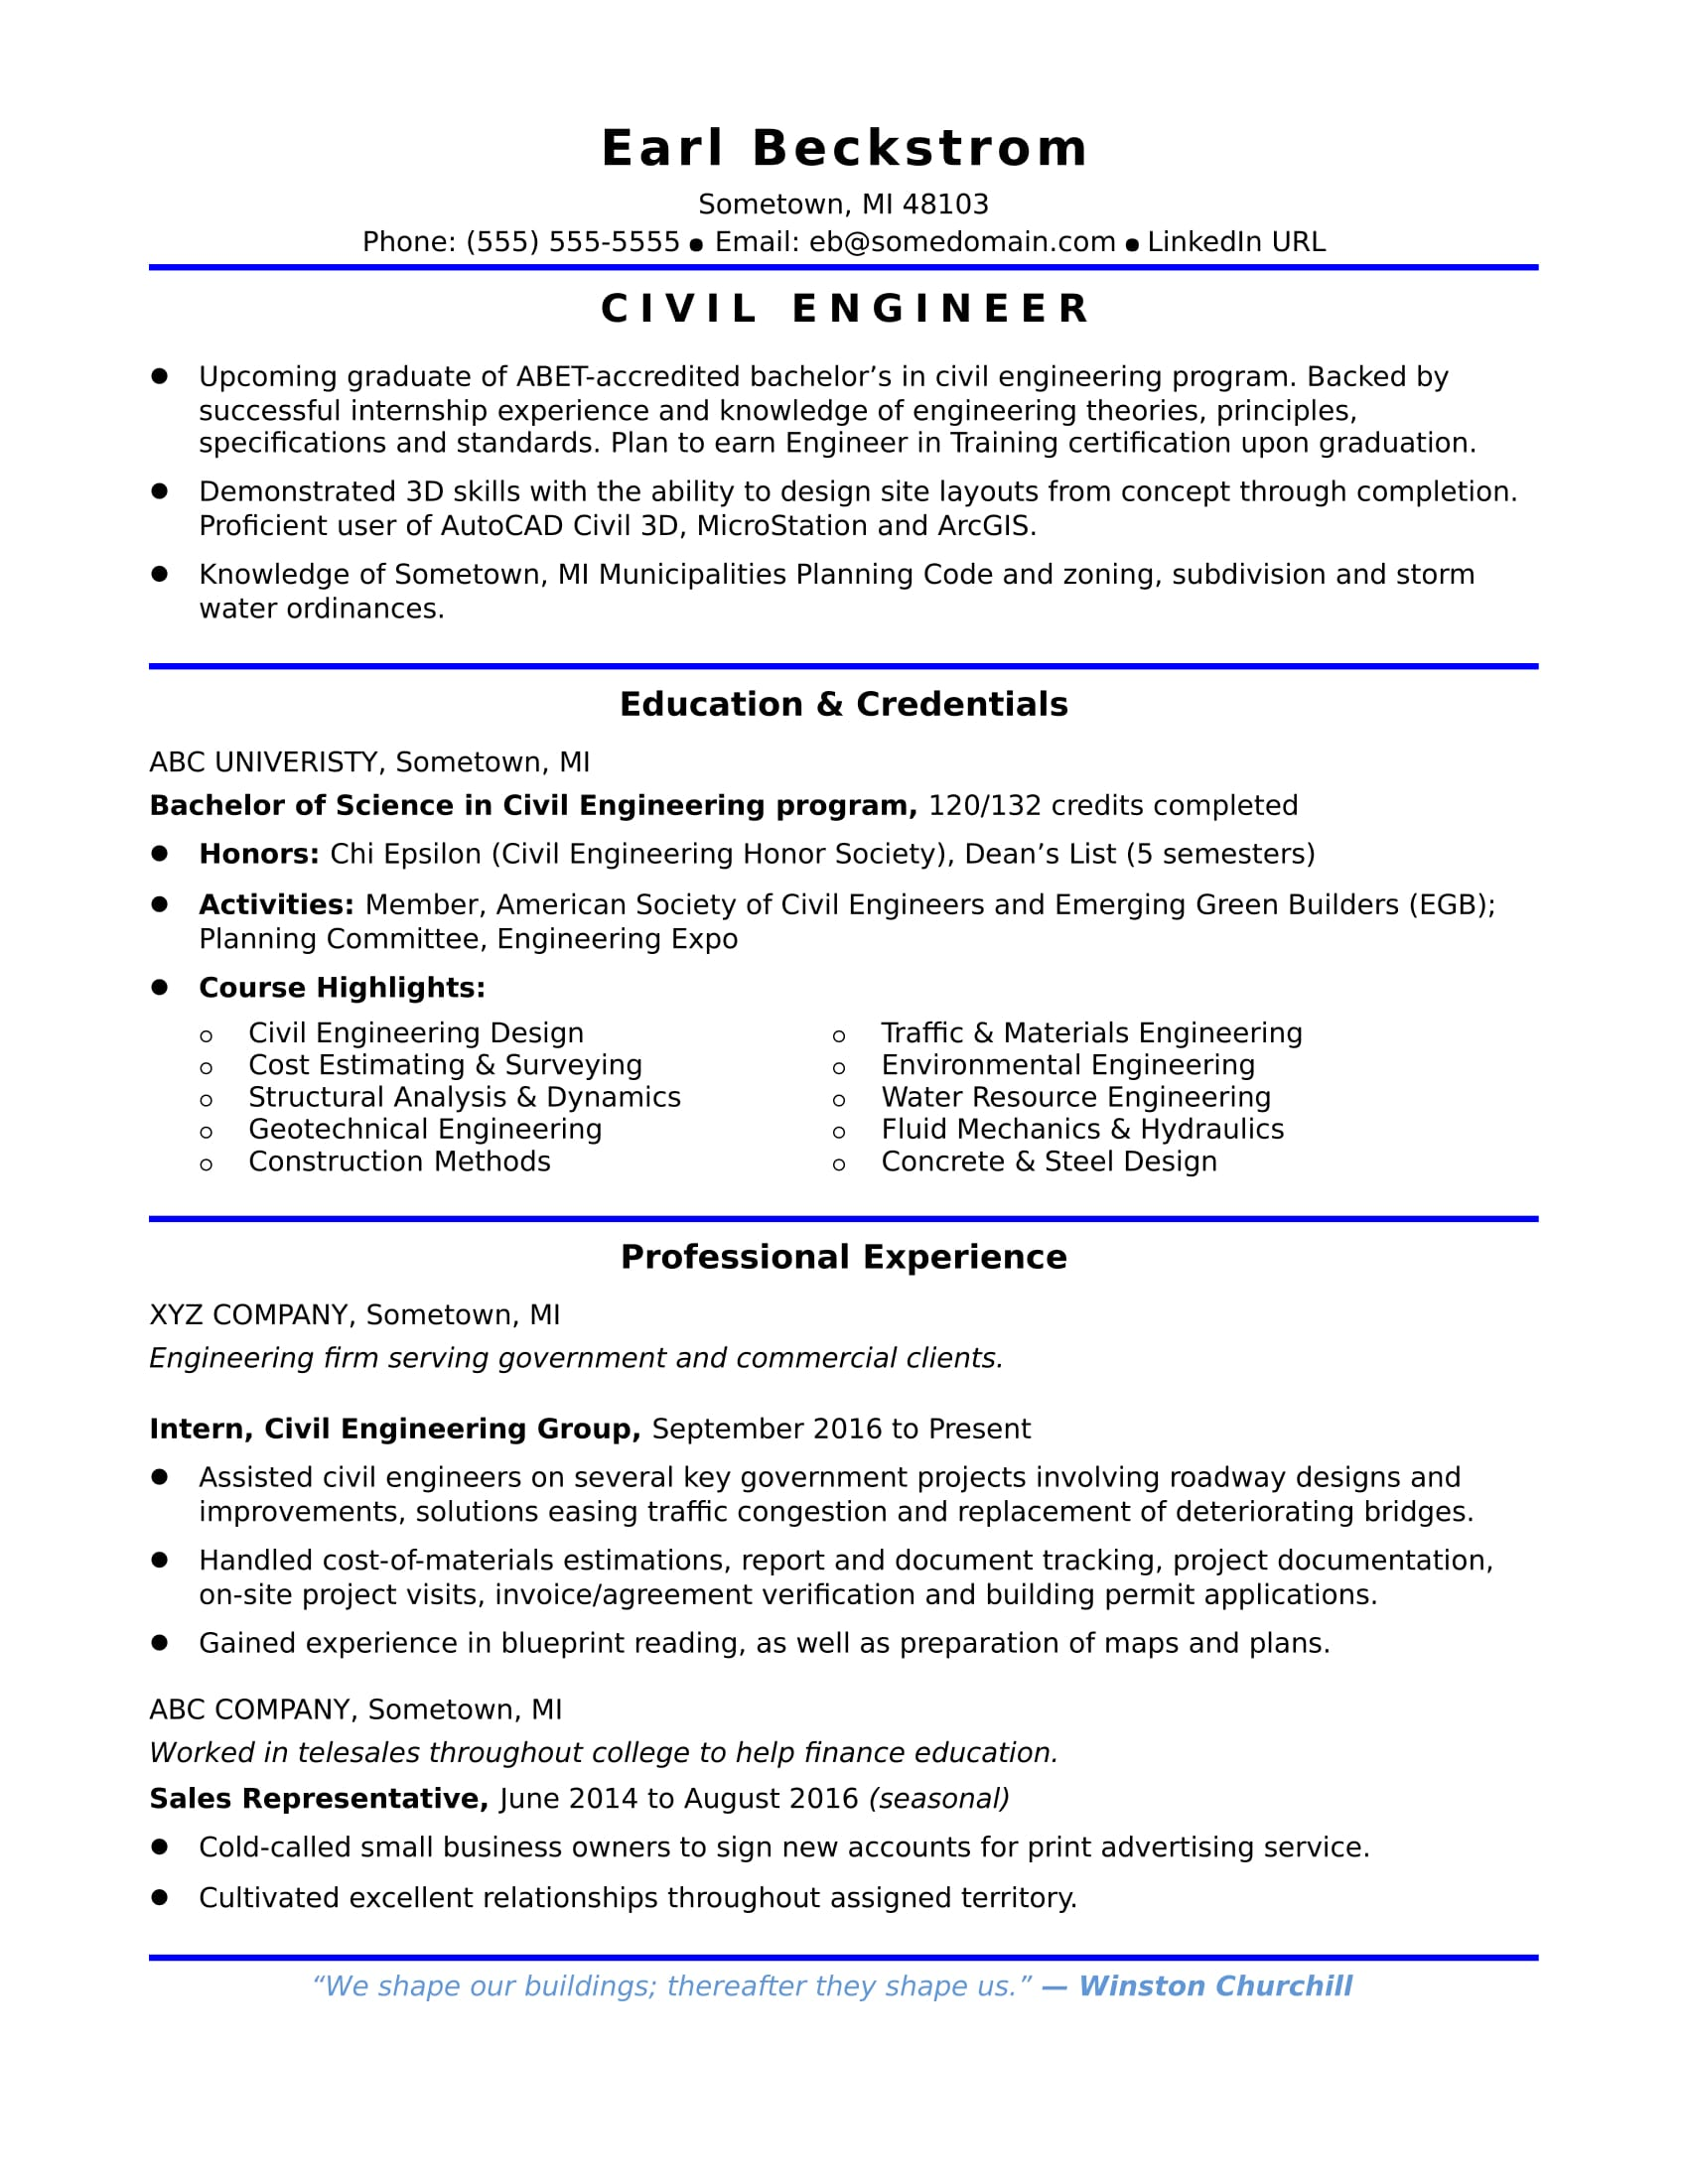 Sample Resume For An Entry Level Civil Engineer  Construction Project Engineer Resume